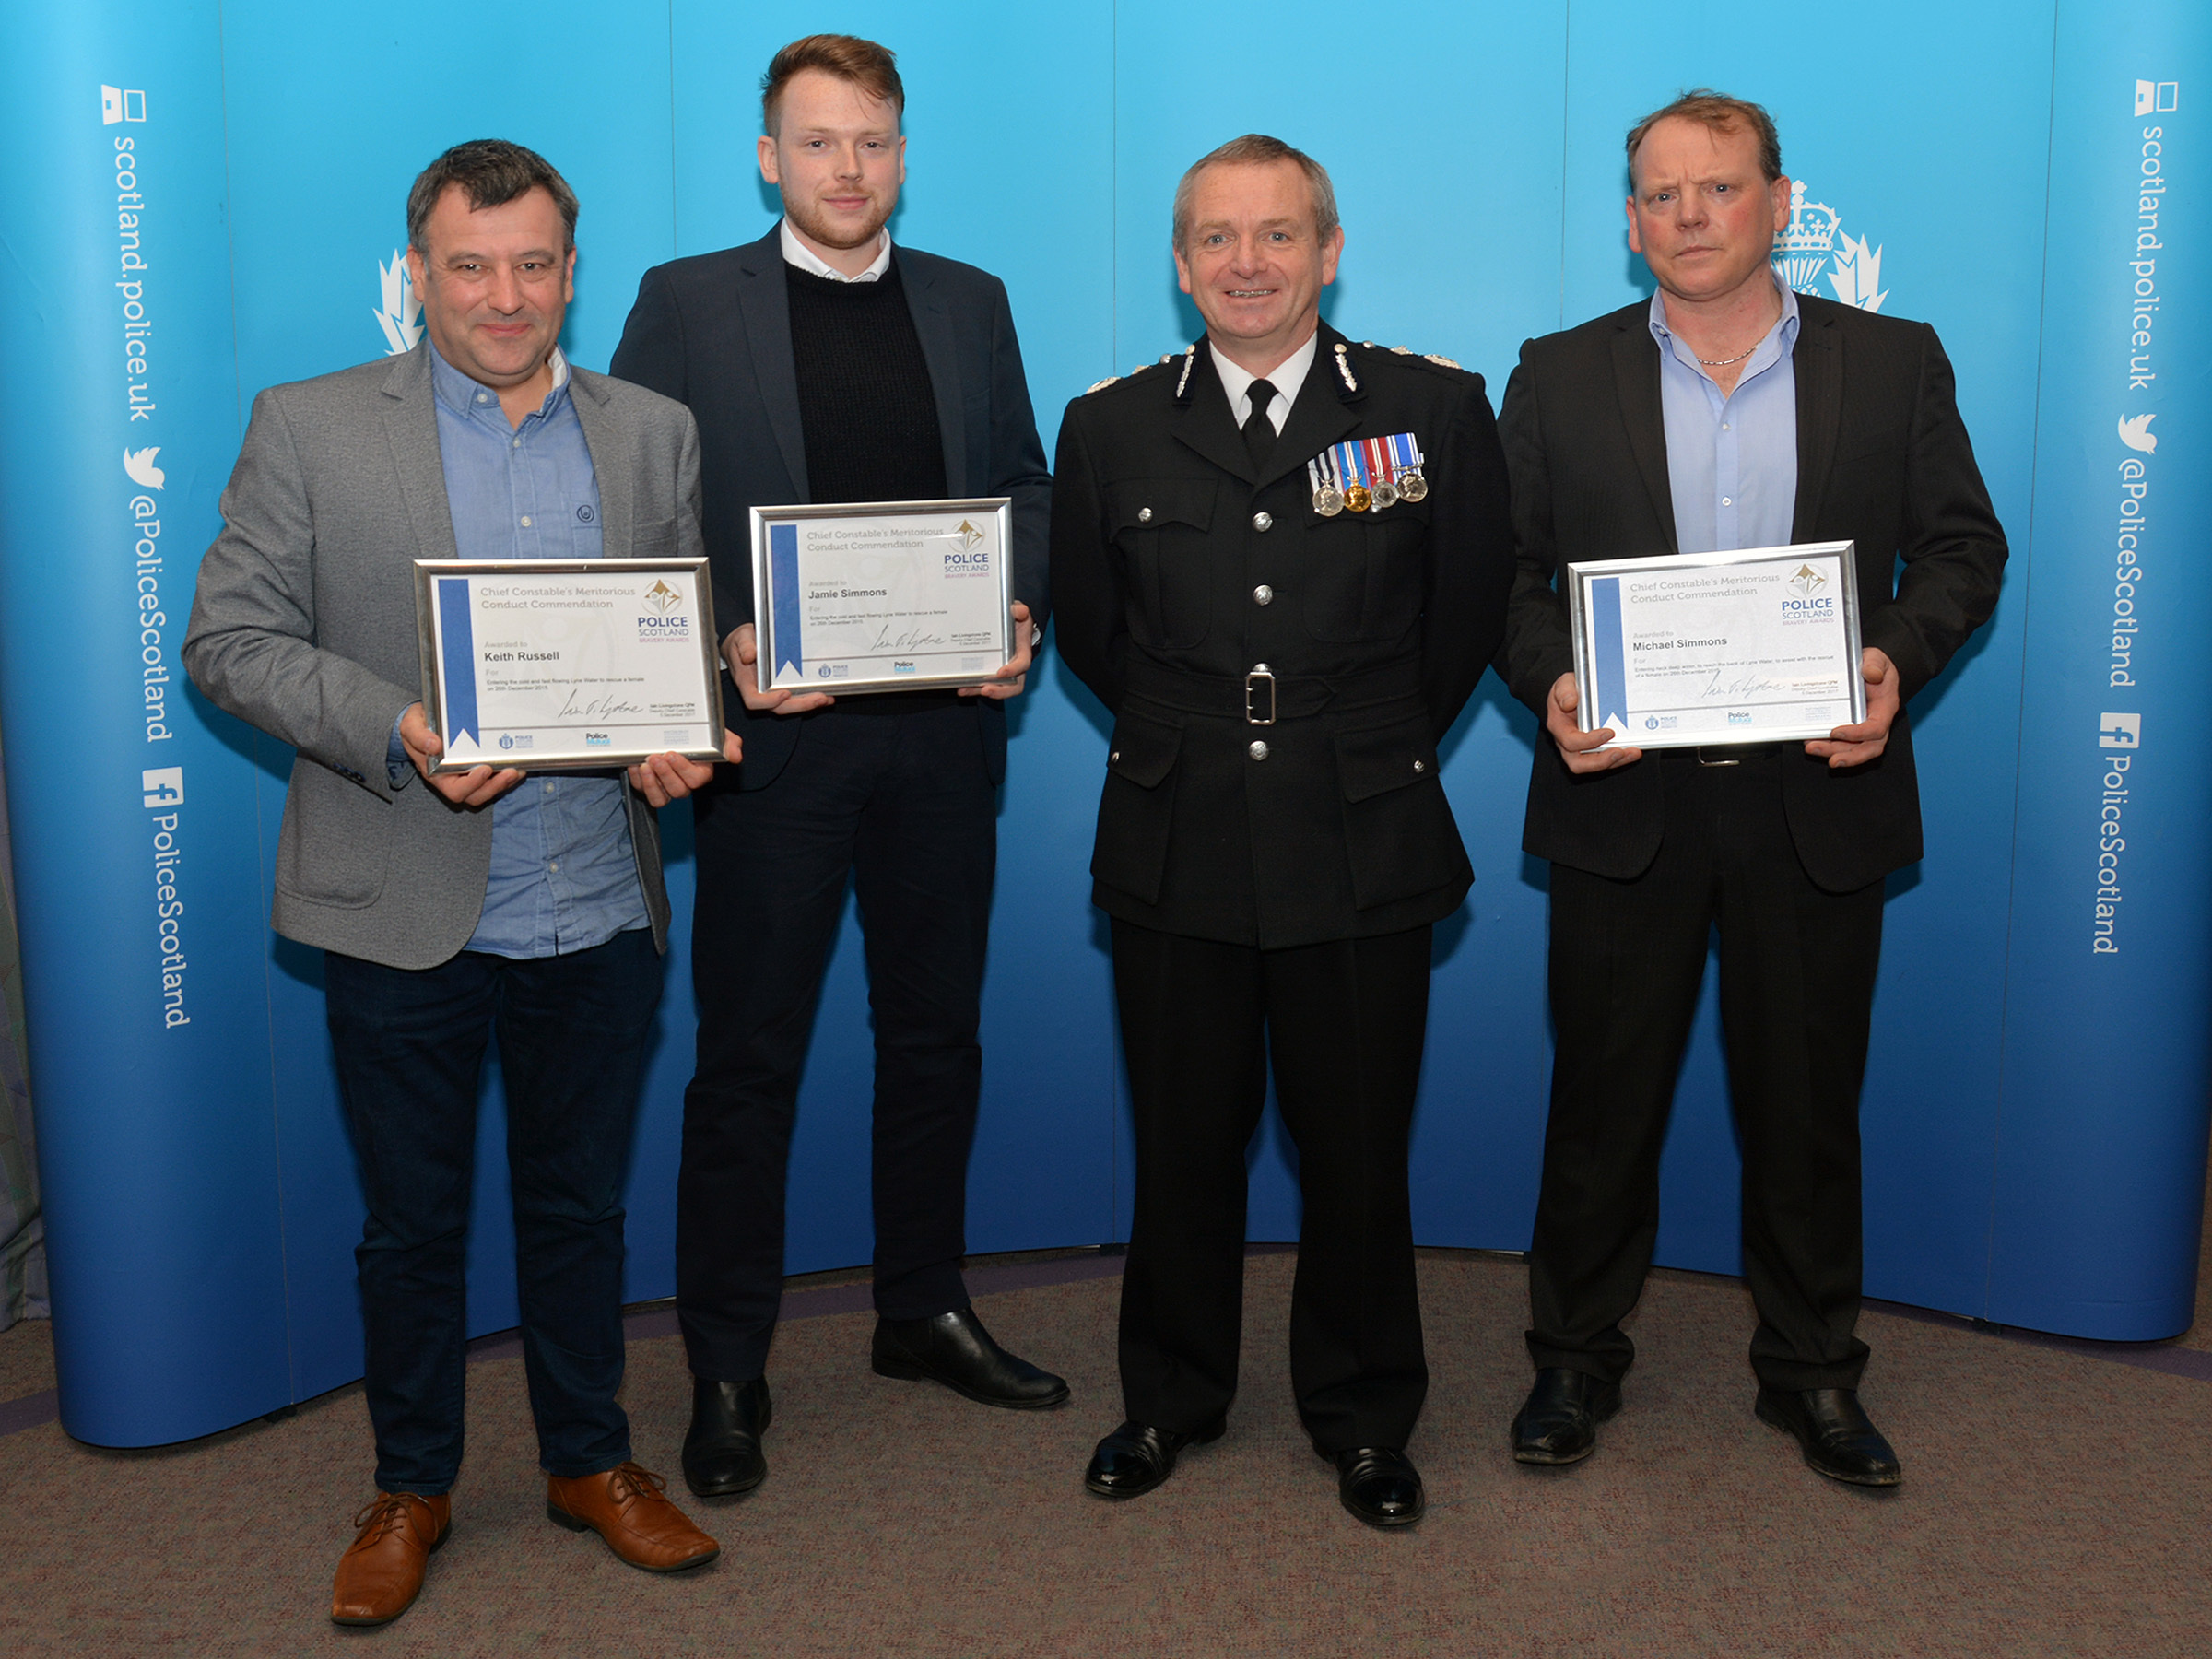 Keith, Jamie and Michael collected their award this week from Deputy Chief Constable Iain Livingstone